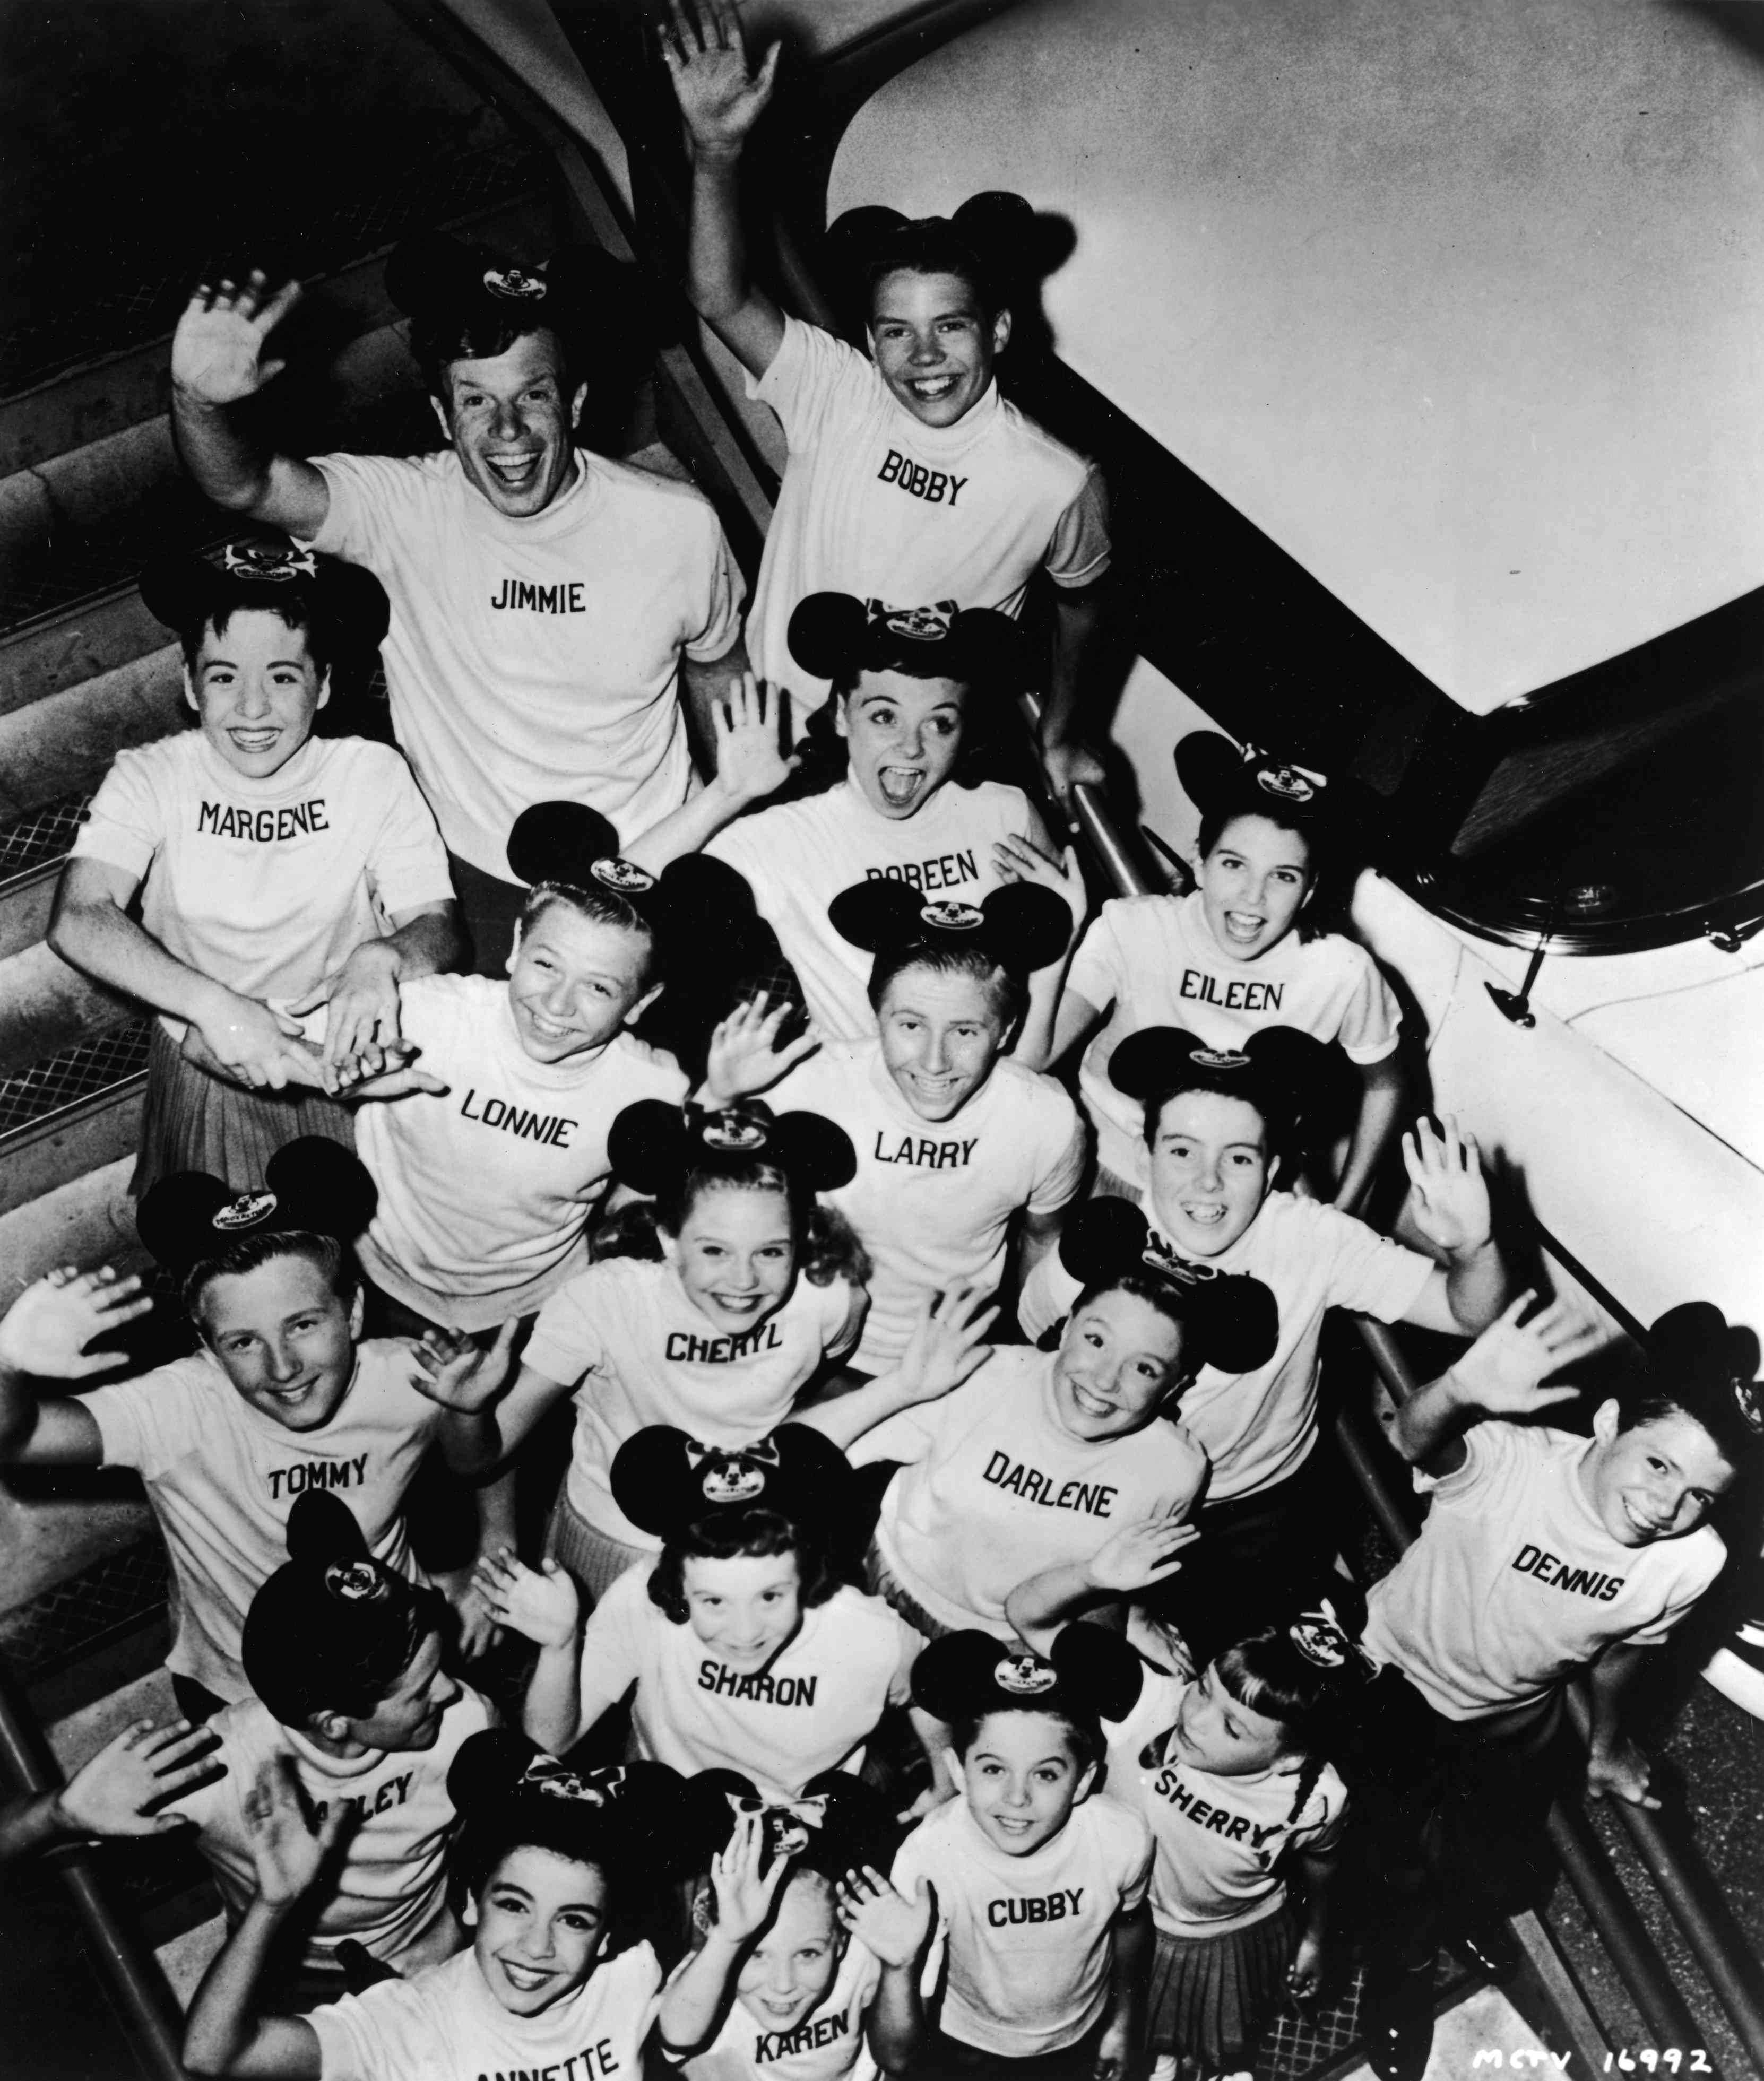 portrait of cast members of The Micky Mouse Club' television show, c. 1957